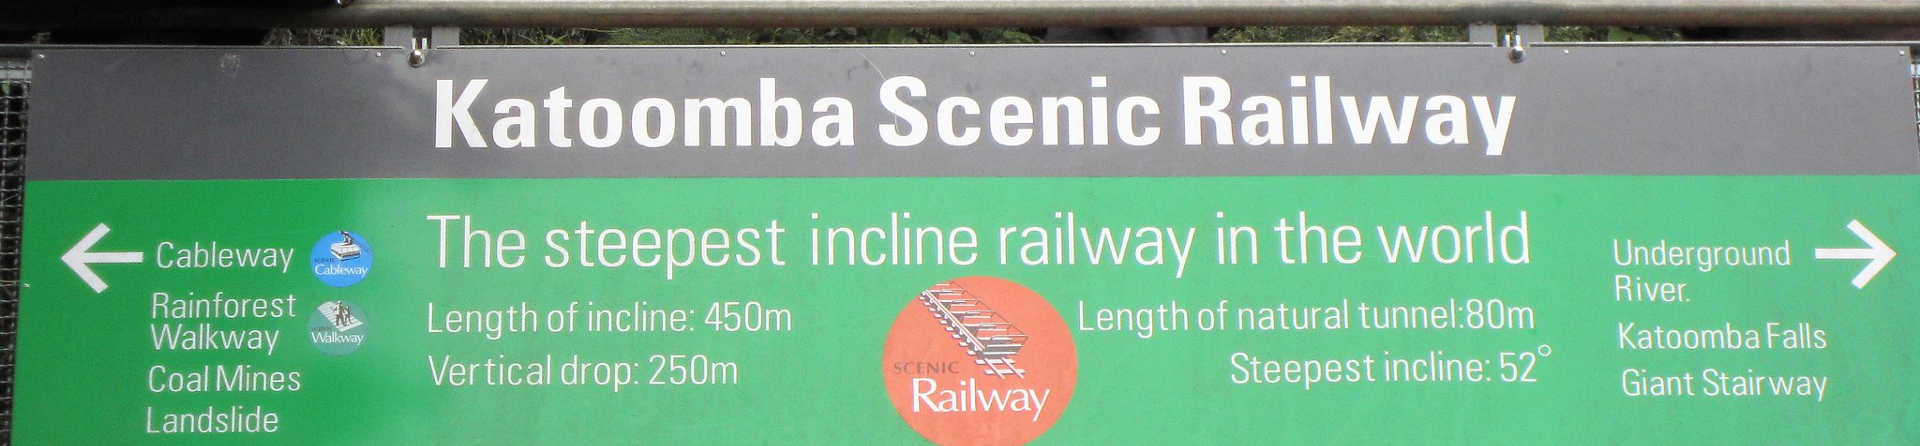 How long is the Scenic Railway?